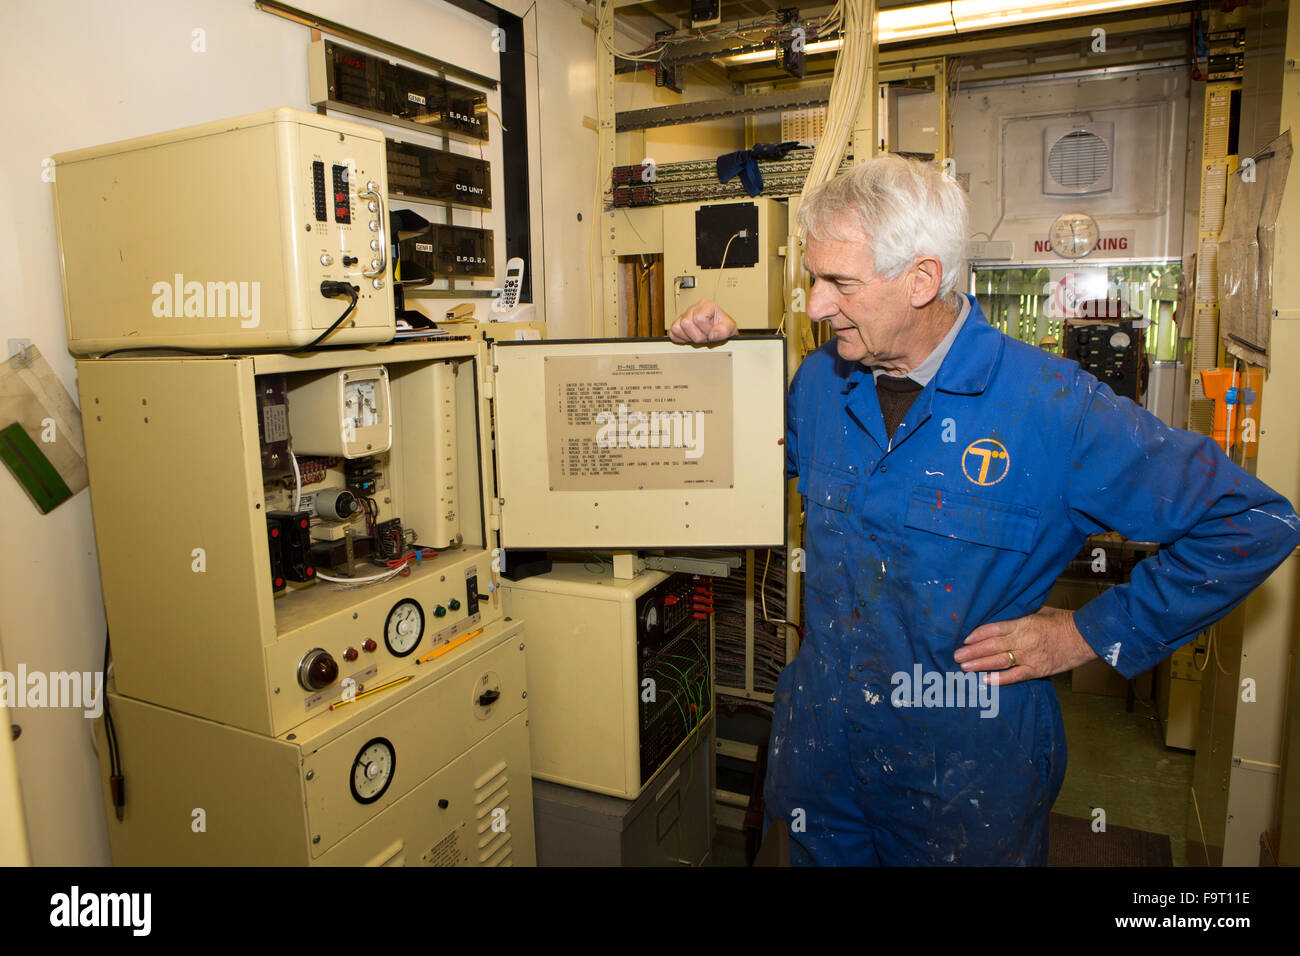 UK, England, Worcestershire, Bromsgrove, Avoncroft Museum, National Telephone Kiosk Collection, volunteer Roger - Stock Image